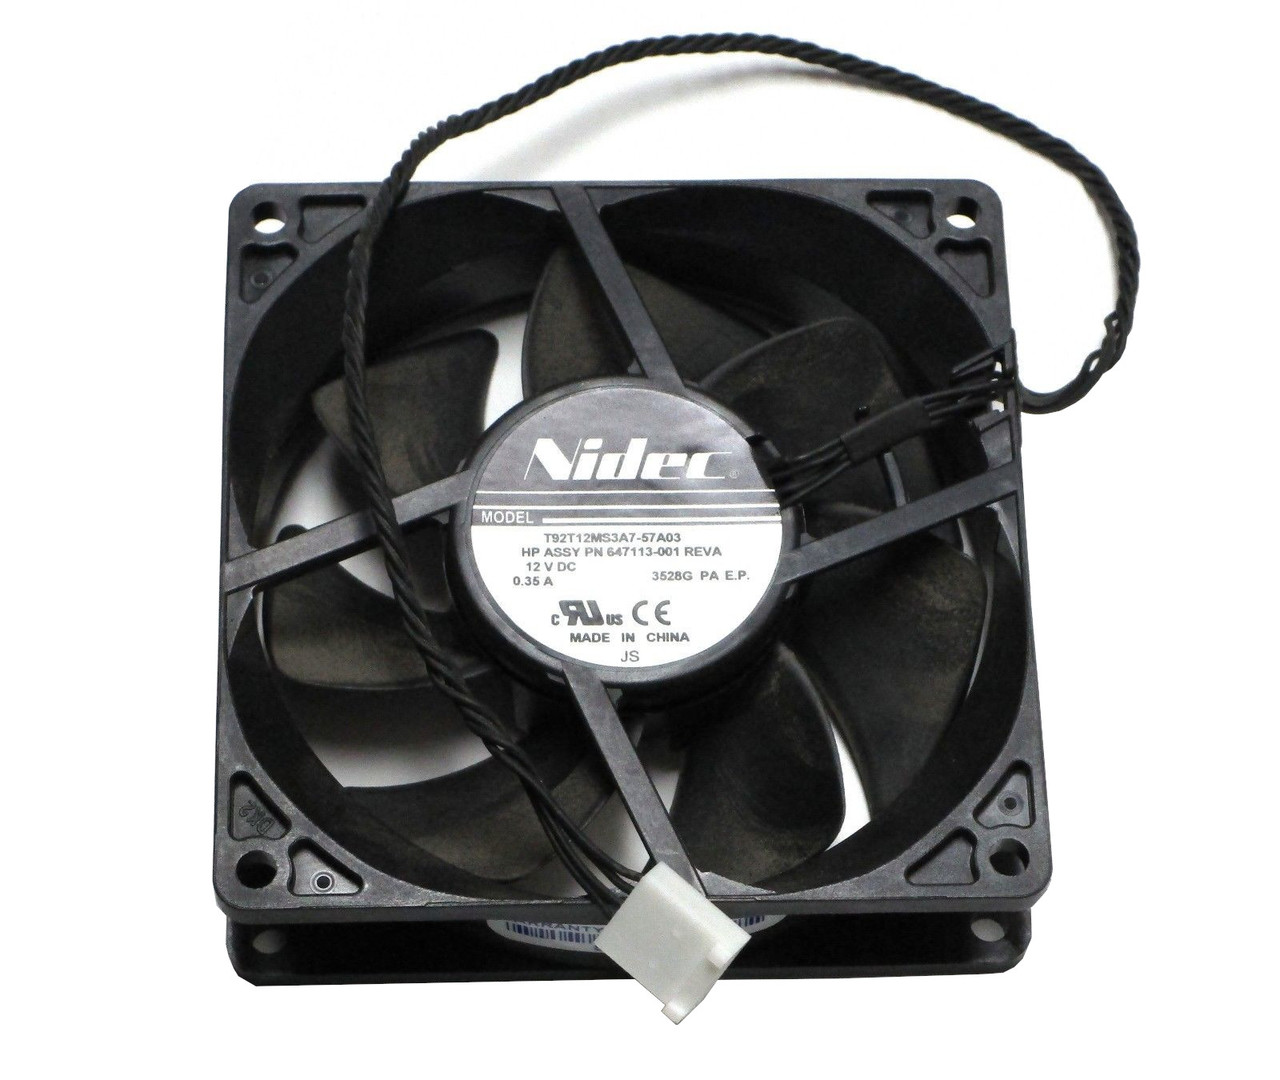 HP 684025-001 Front System Fan Assembly for Workstation Z820